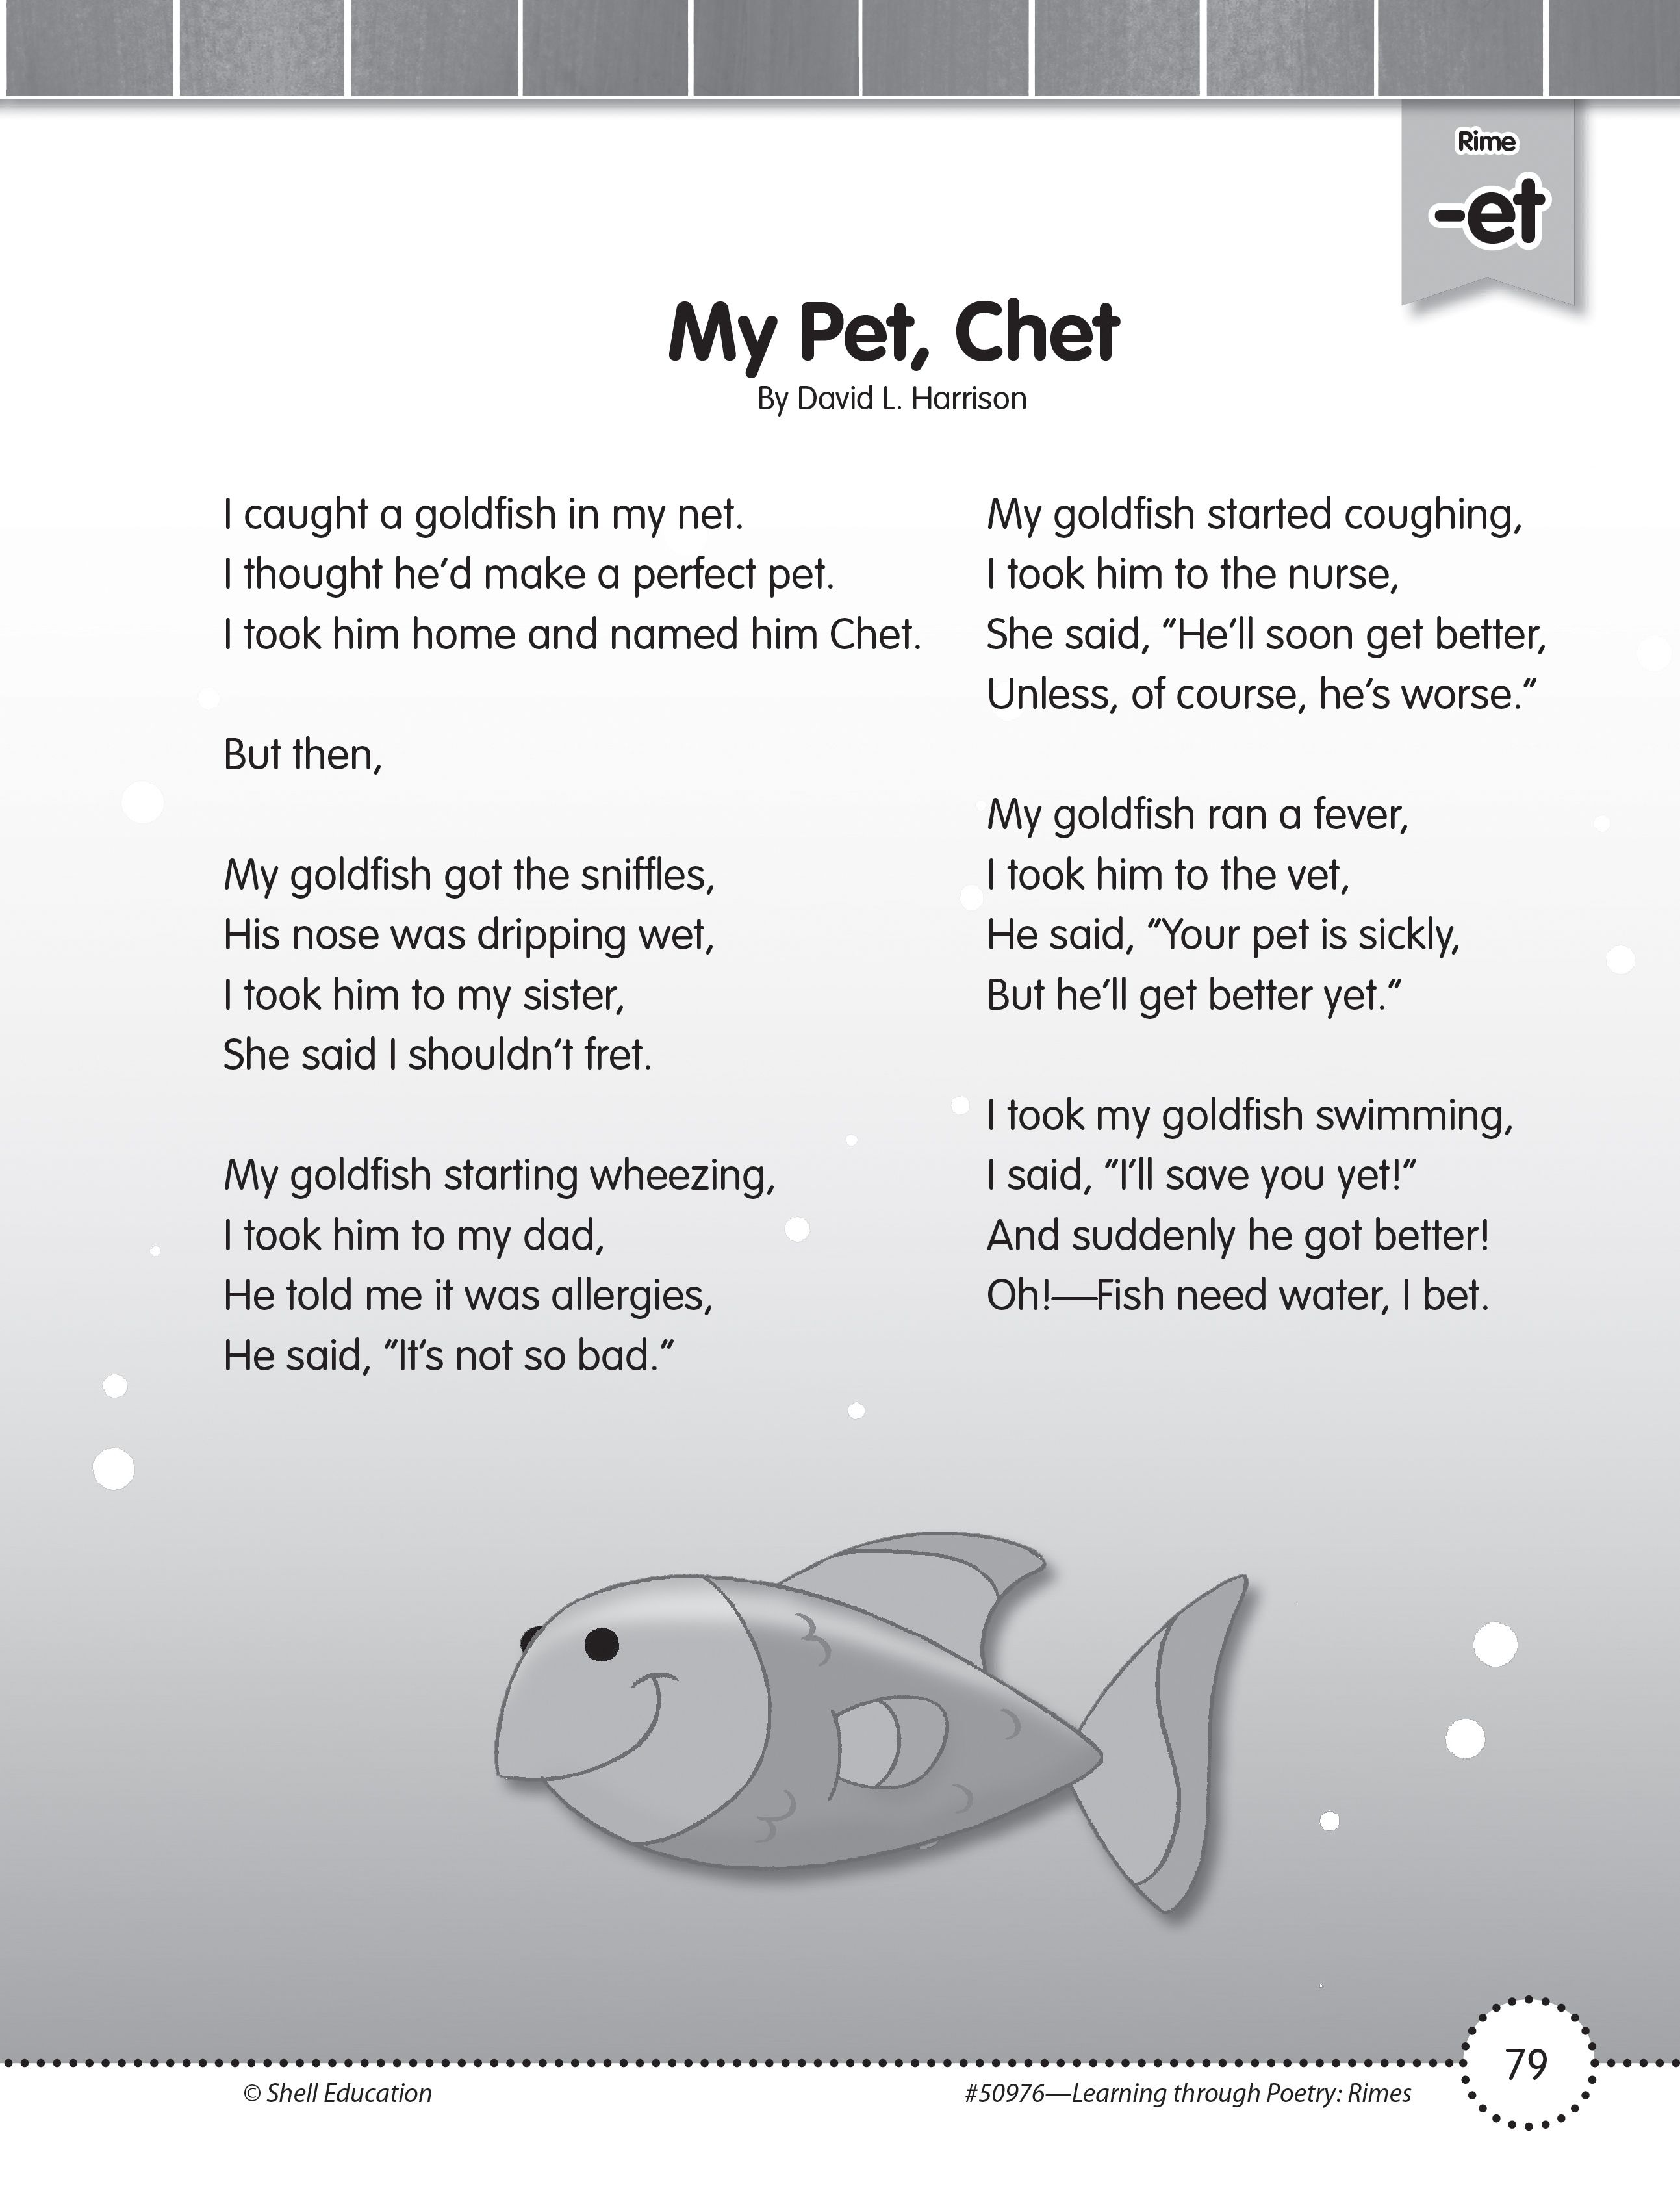 The Strategies Provided In Learning Through Poetry Include